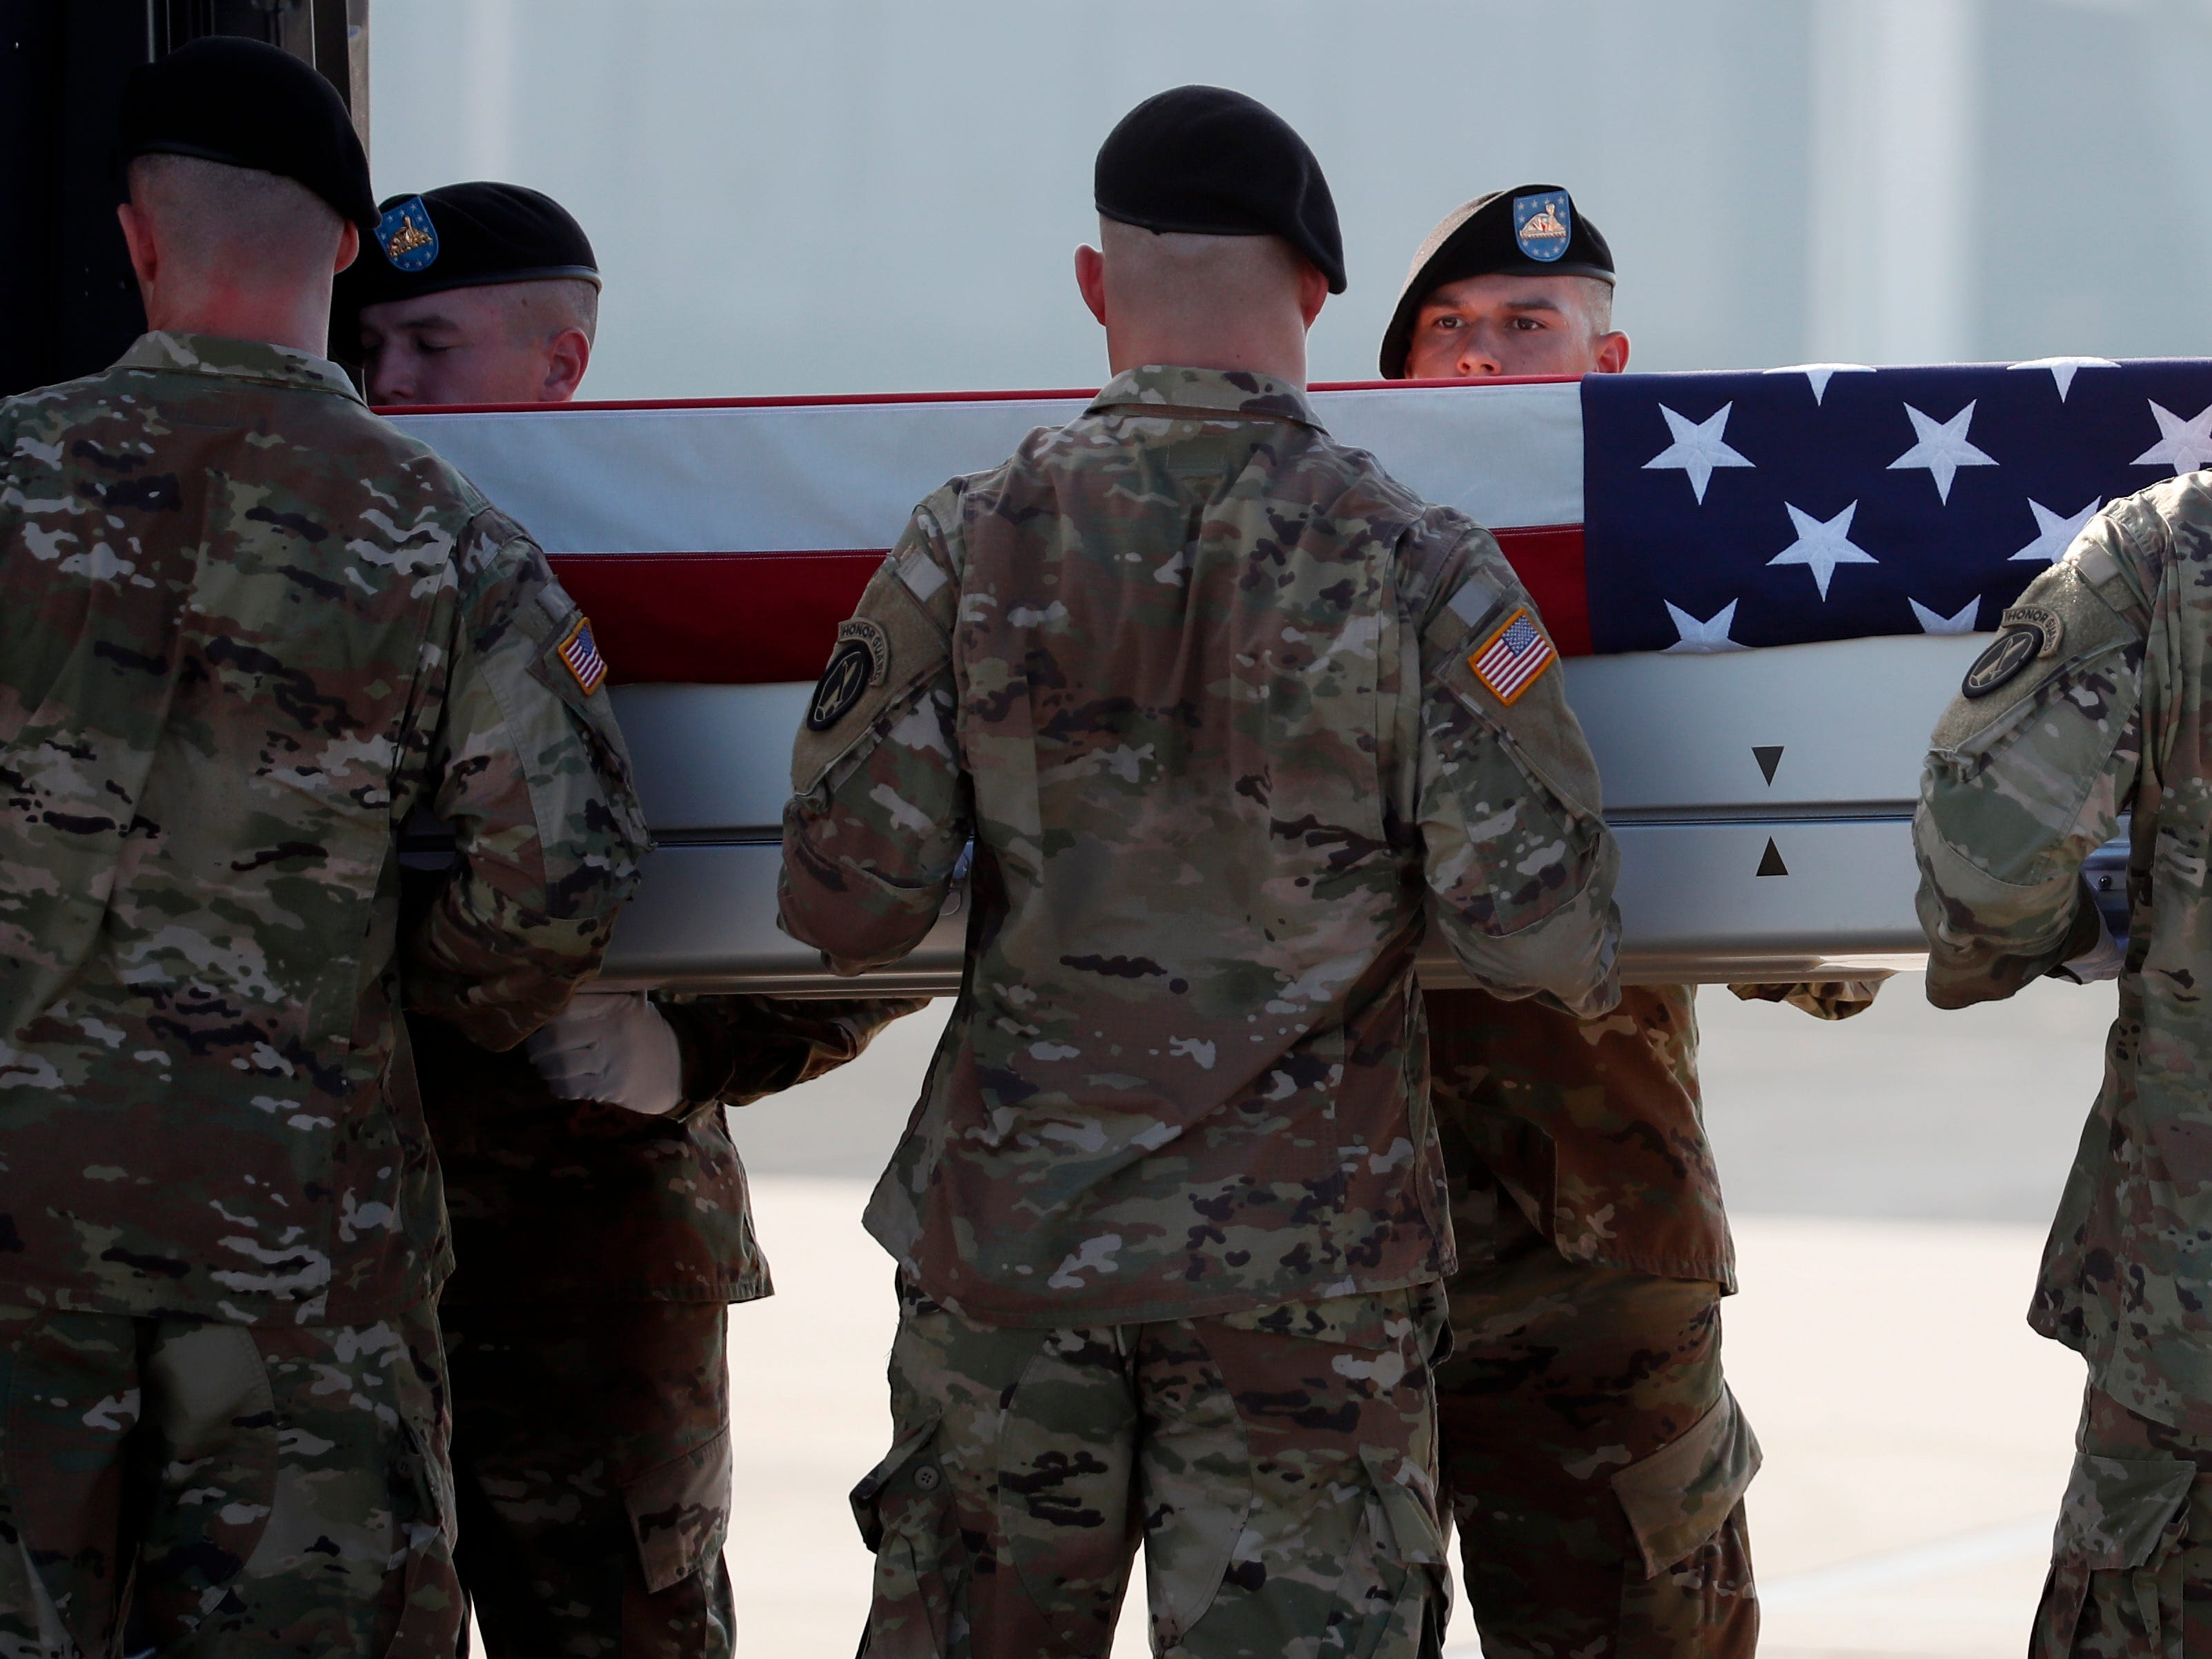 An Army carry team moves a transfer case containing the remains of U.S. Army Staff Sgt. Diobanjo S. San Agustin at Dover Air Force Base, Del. on Sept. 5, 2018, at Dover Air Force Base, Del. According to the Department of Defense, San Agustin of National City, Calif., died while supporting Operation Freedom's Sentinel.